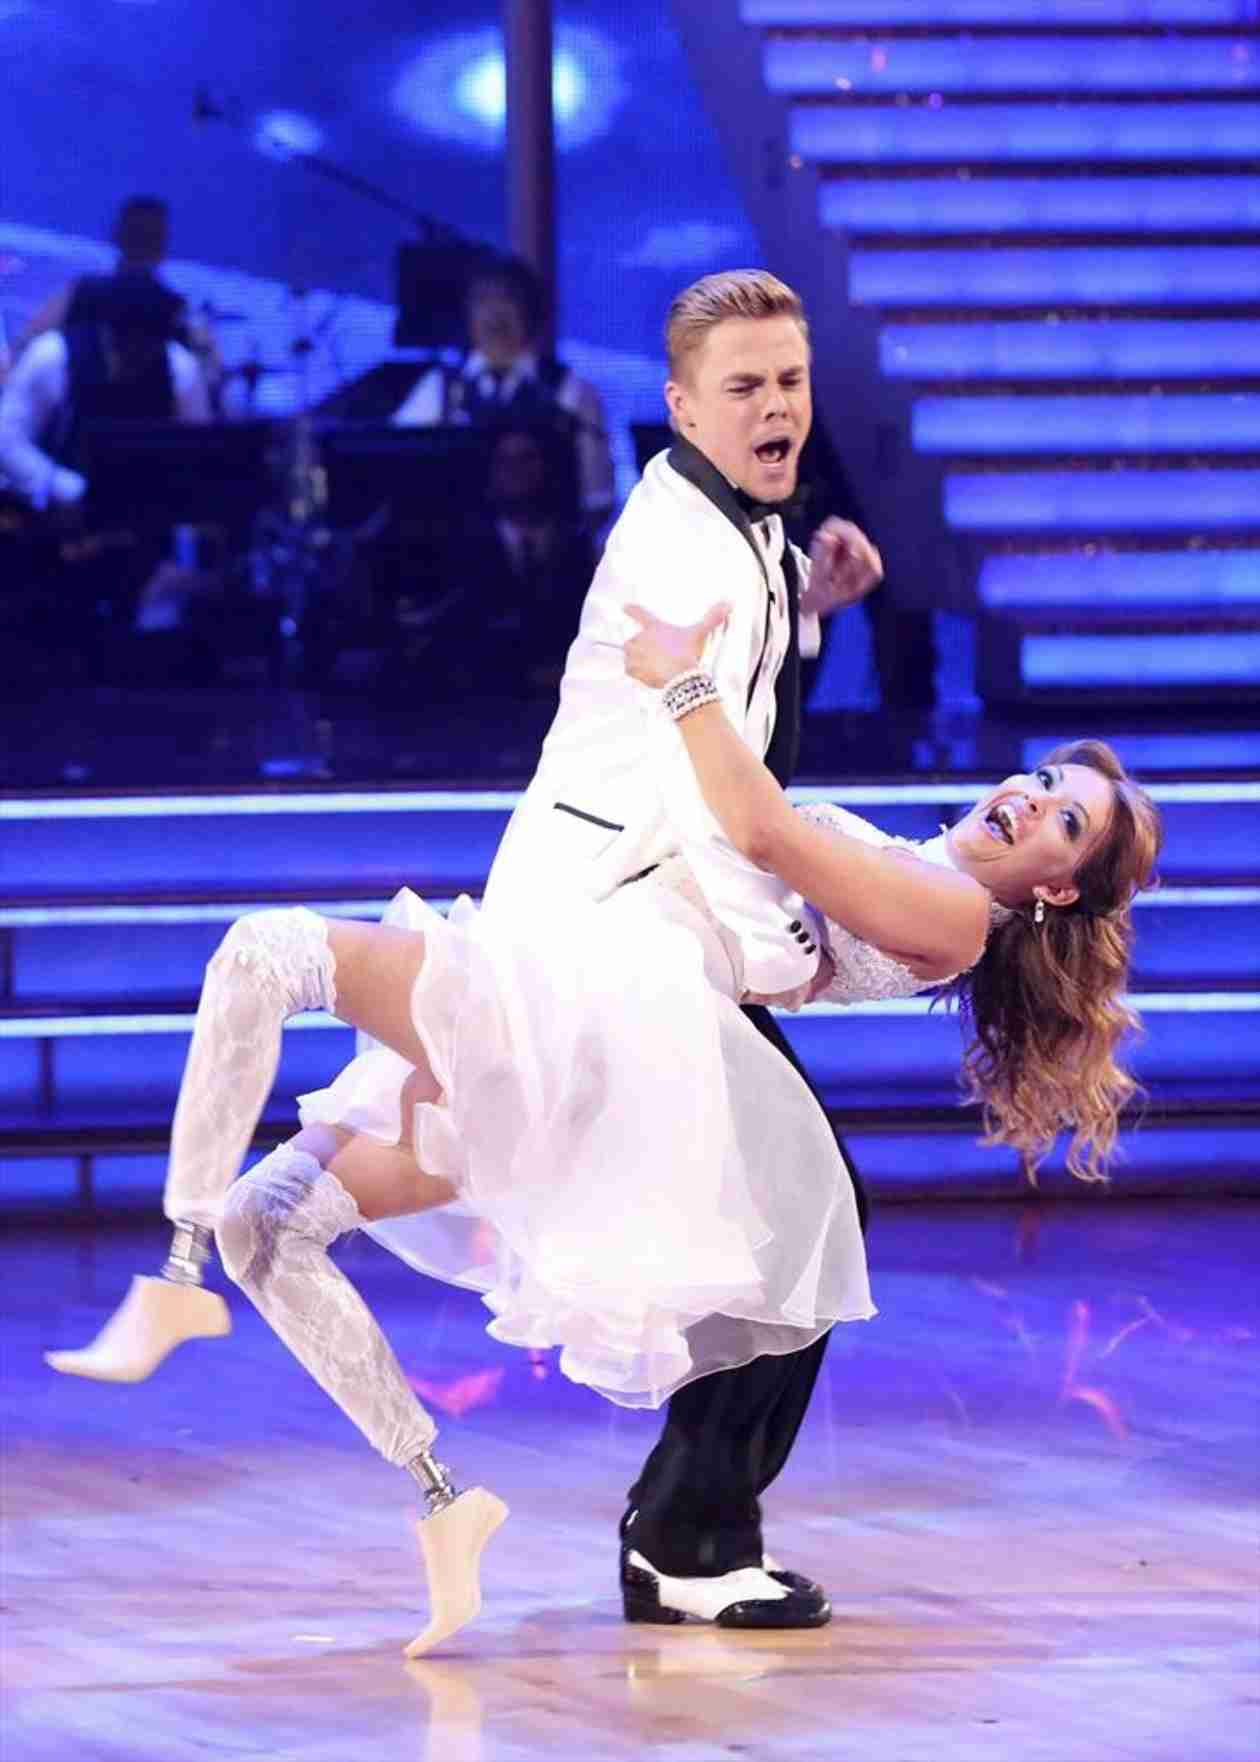 Dancing With the Stars 2014: James Maslow and Amy Purdy's Week 8 Jive Dance Duel (VIDEO)